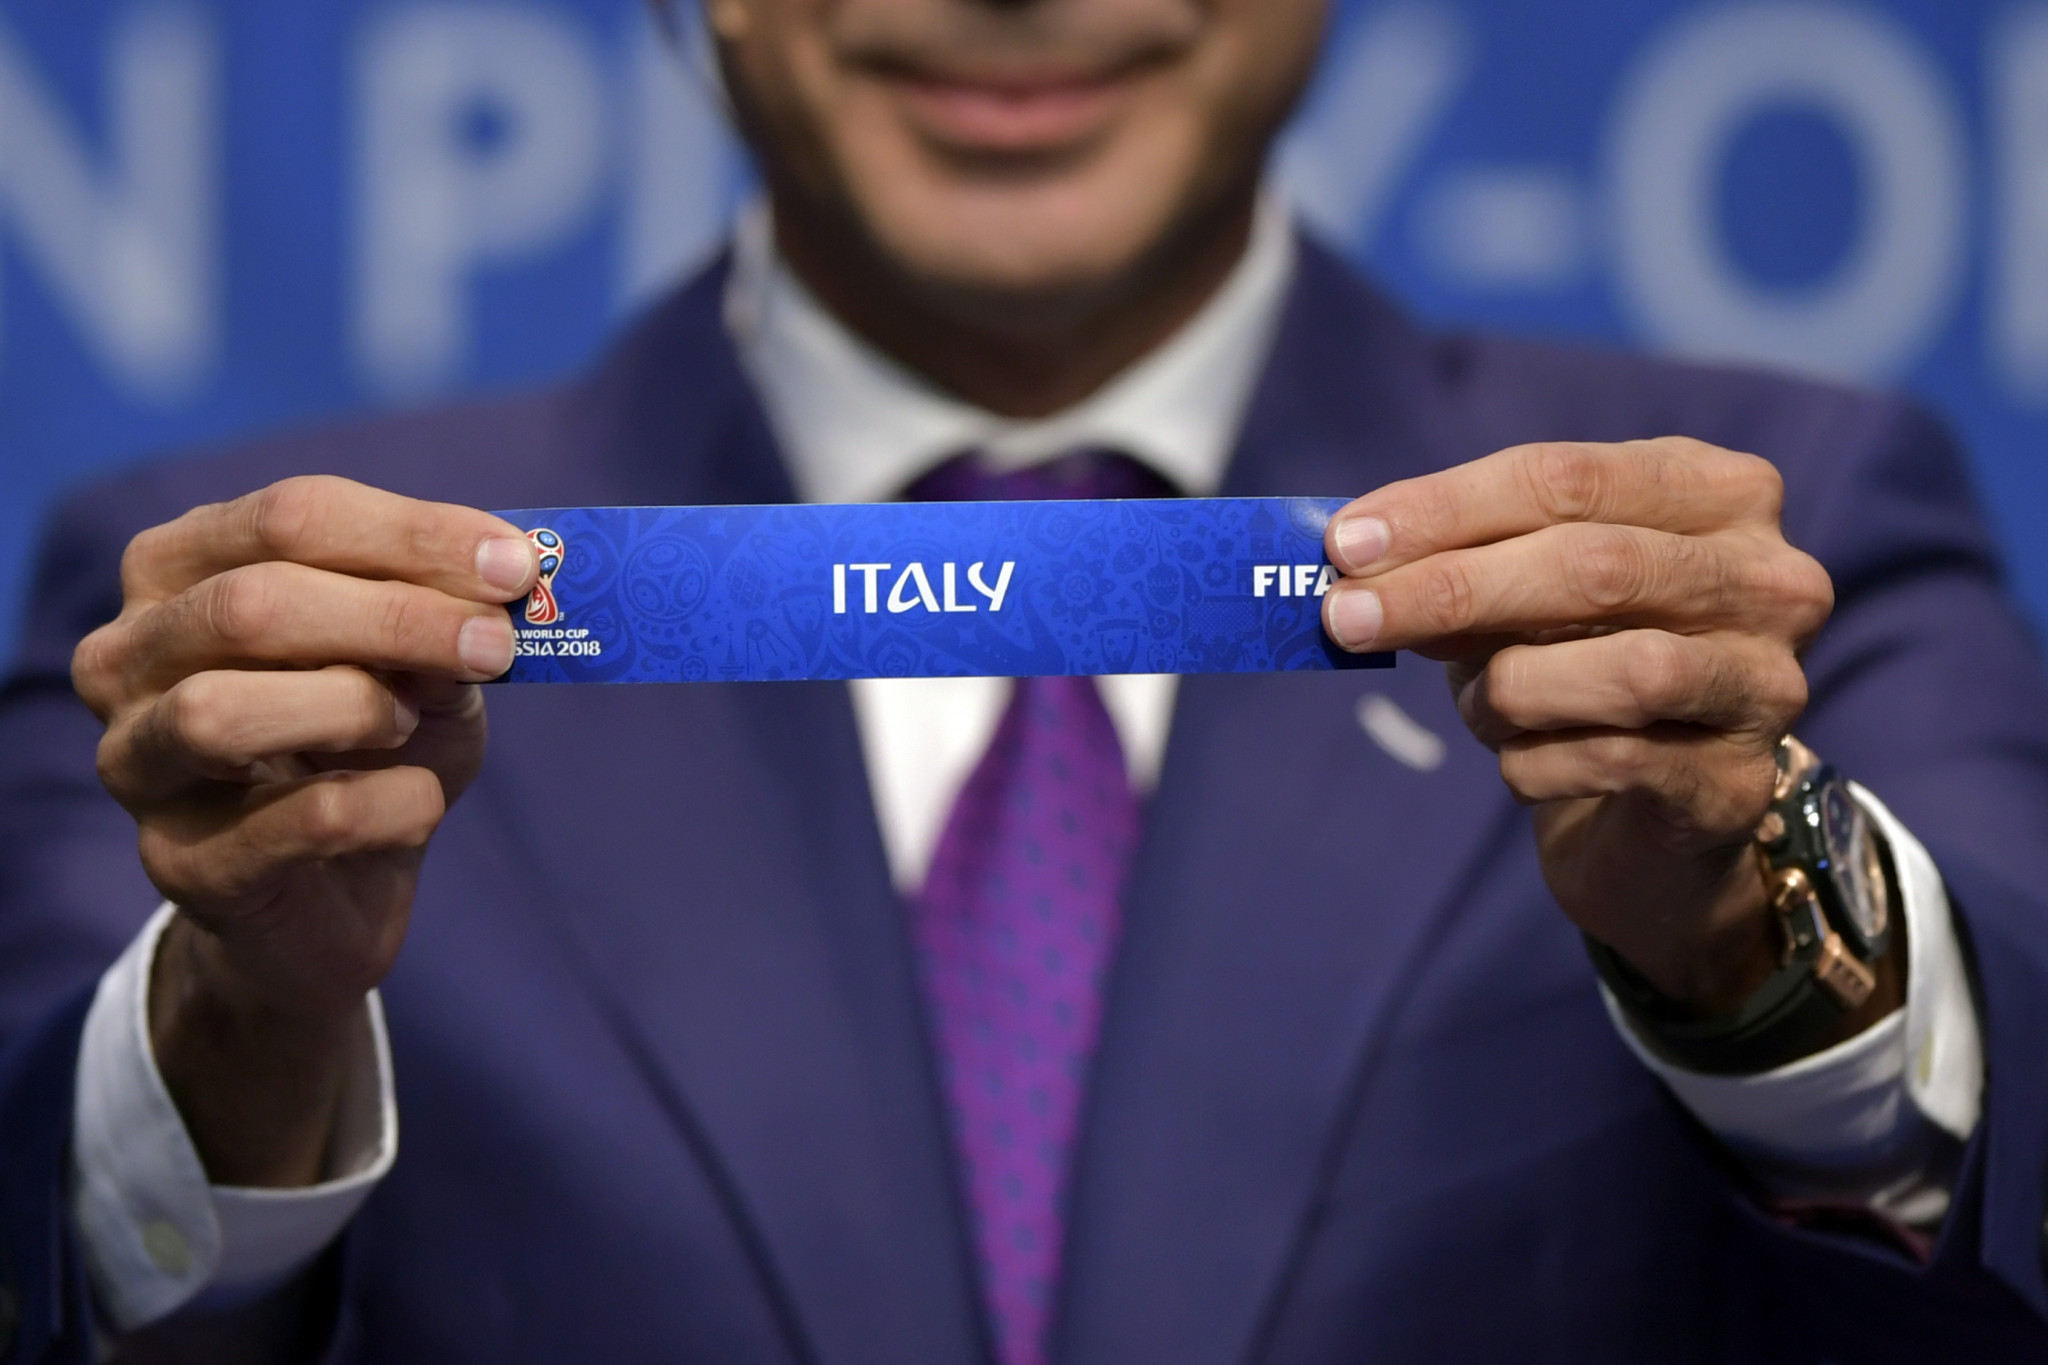 Former champions Italy to play Sweden for place at 2018 FIFA World Cup